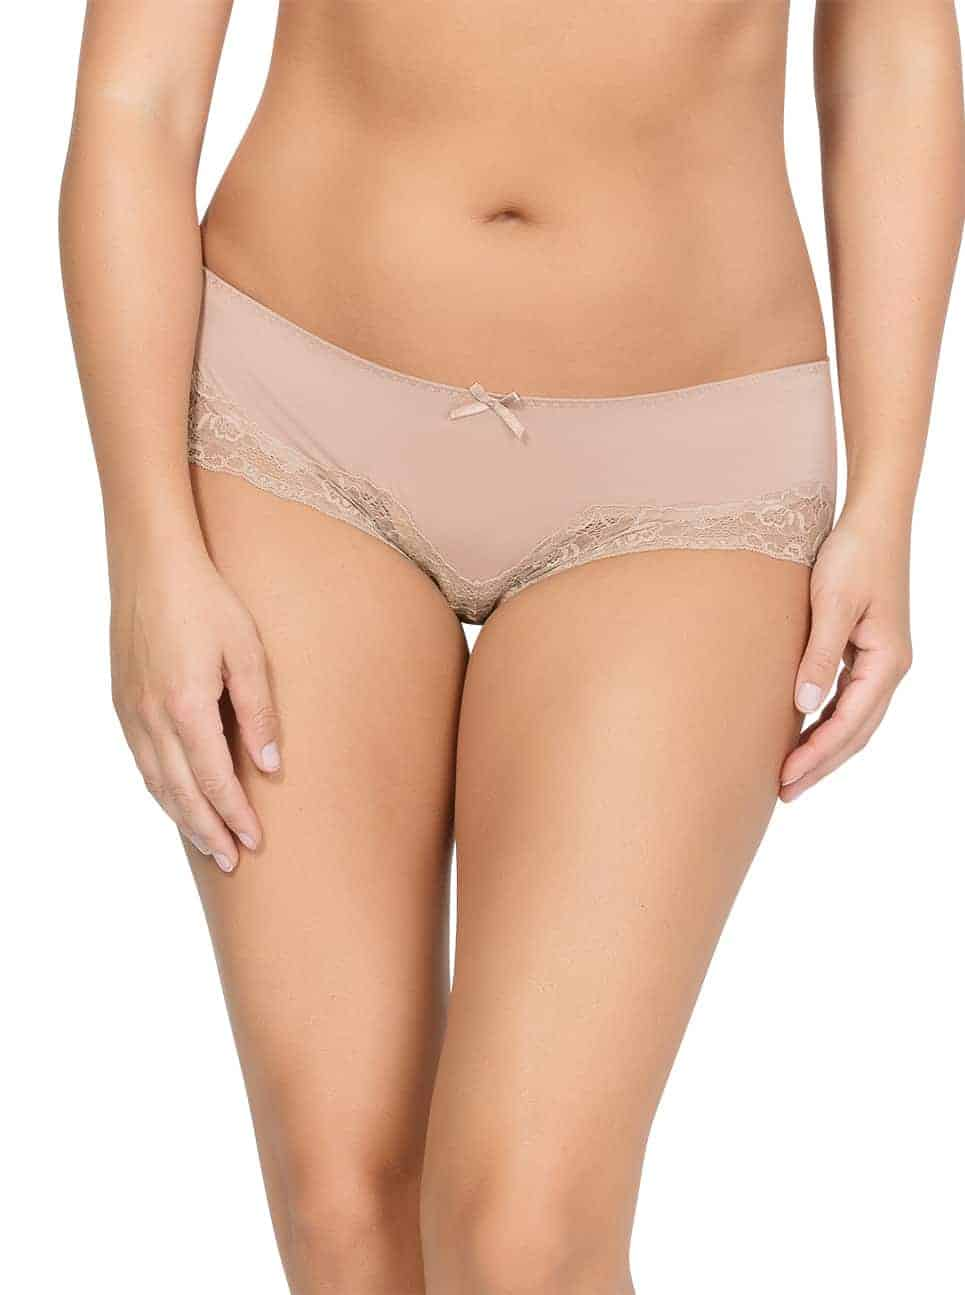 Tess HipsterP5025 BareFront - Tess Hipster - Bare - P5025